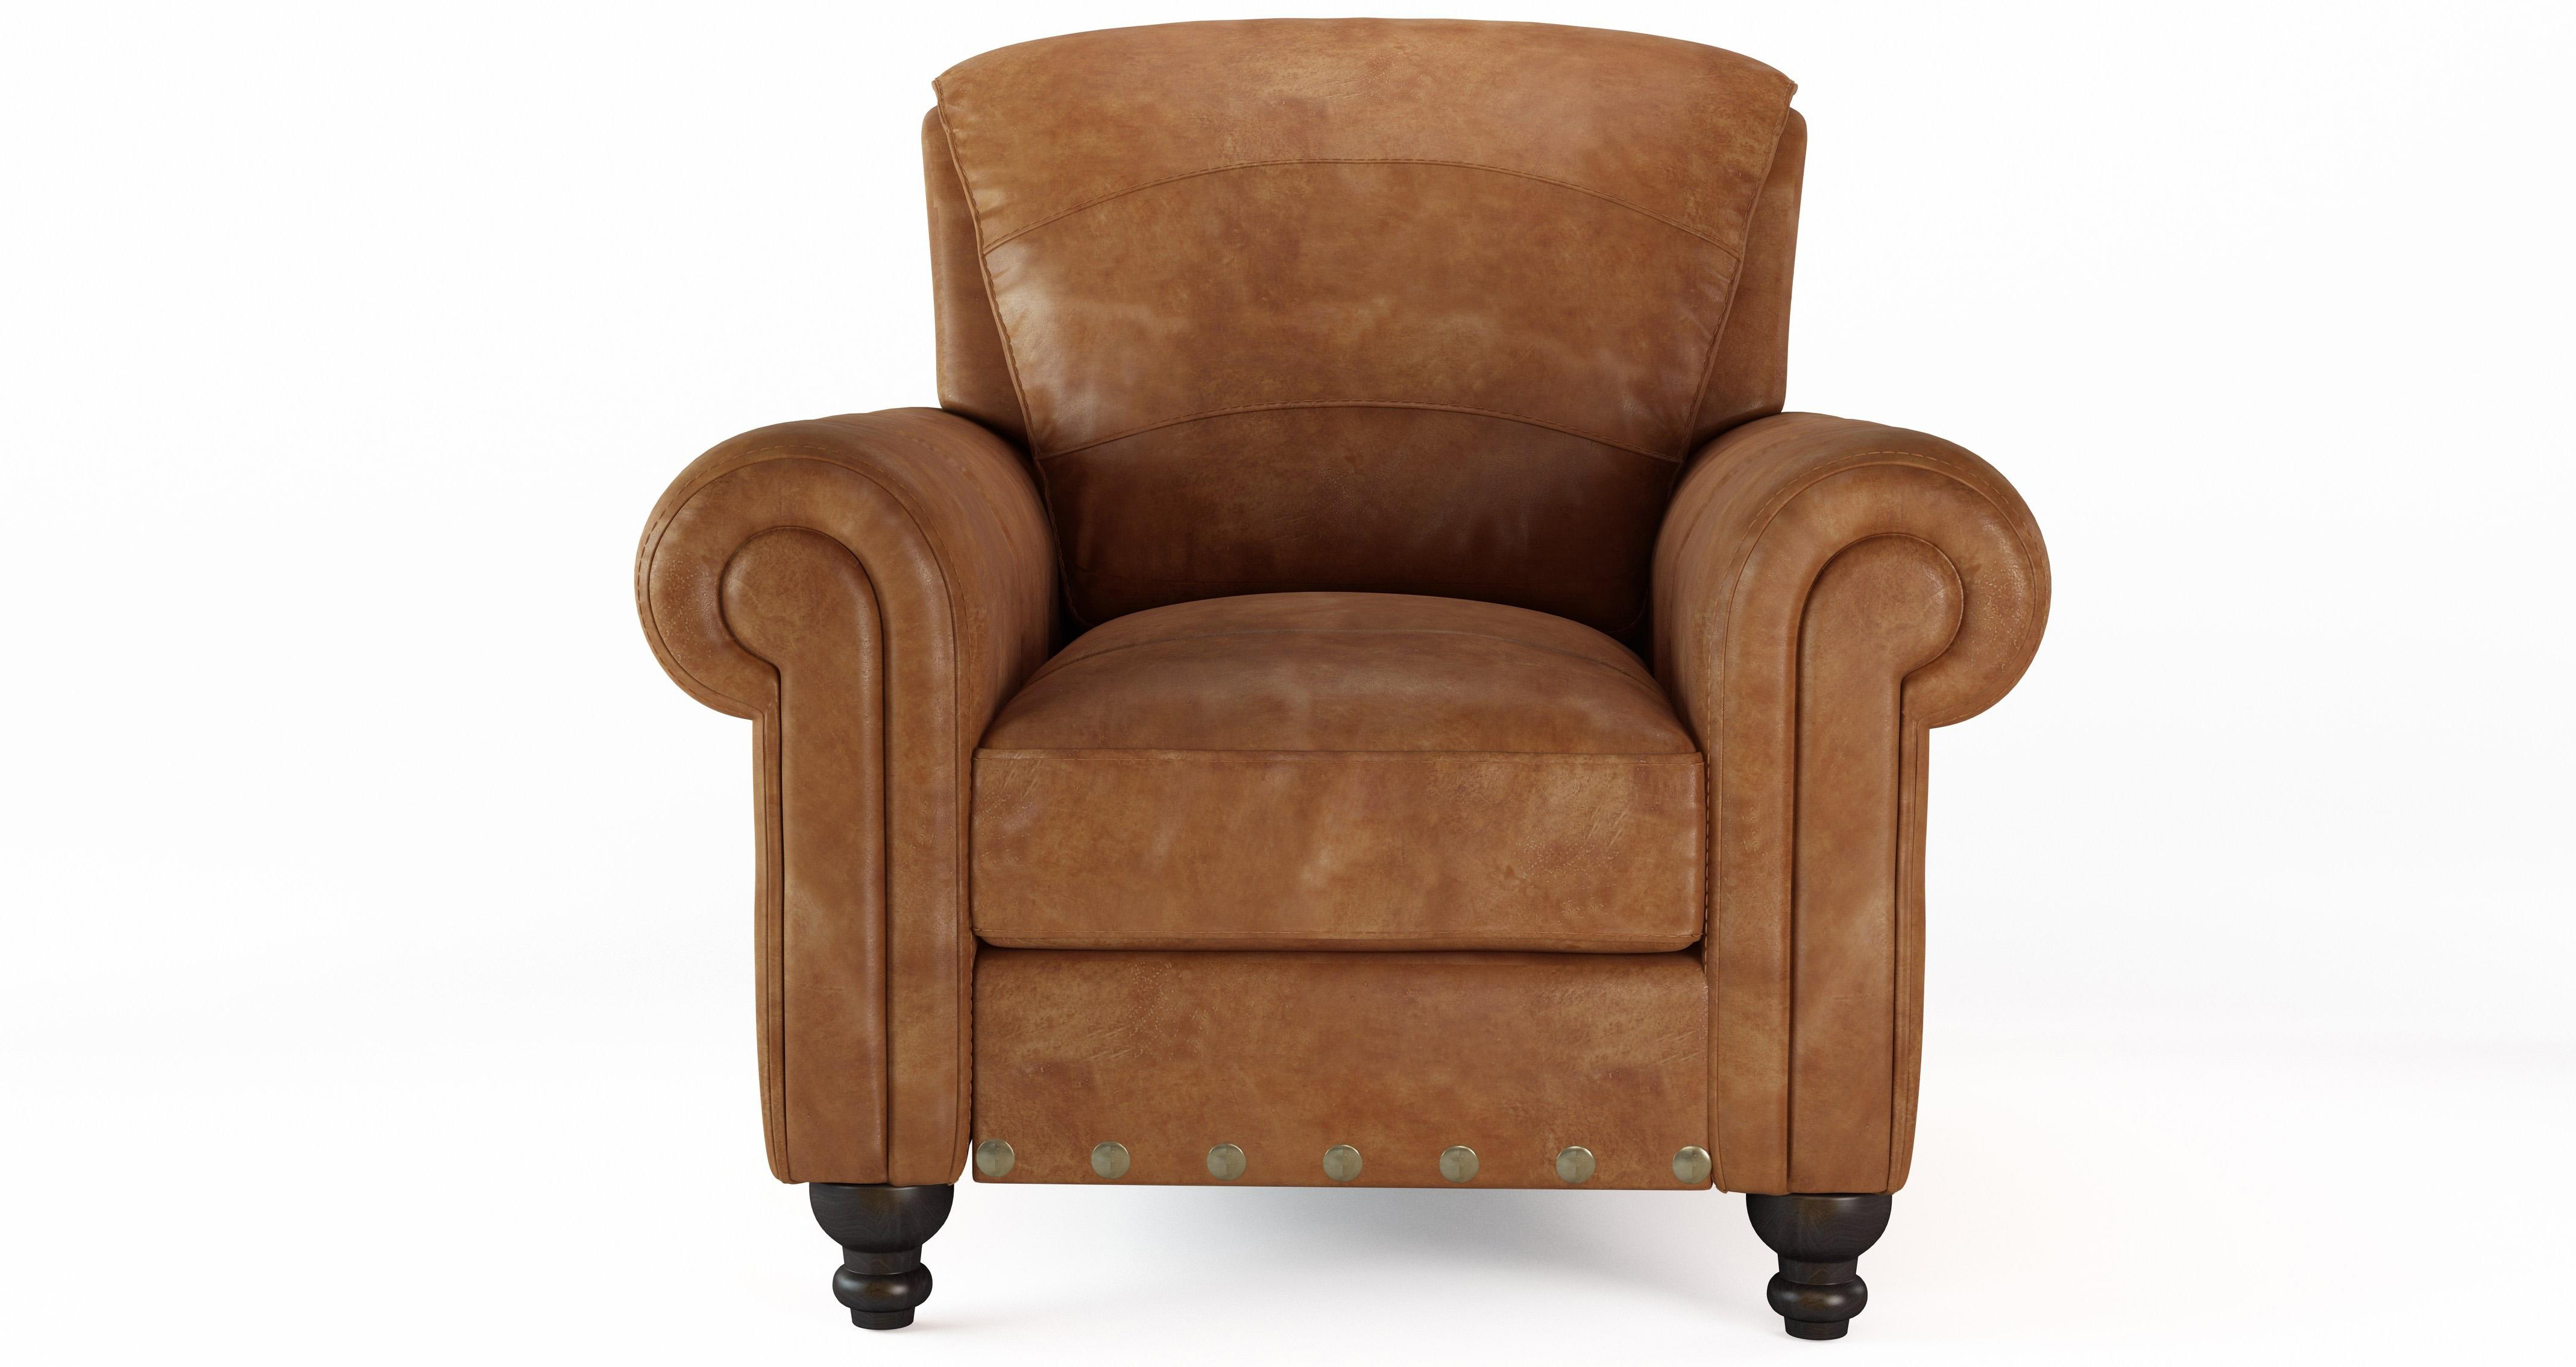 bedroom chair dfs without arms called perth arm 100 real natural leather tan ranch